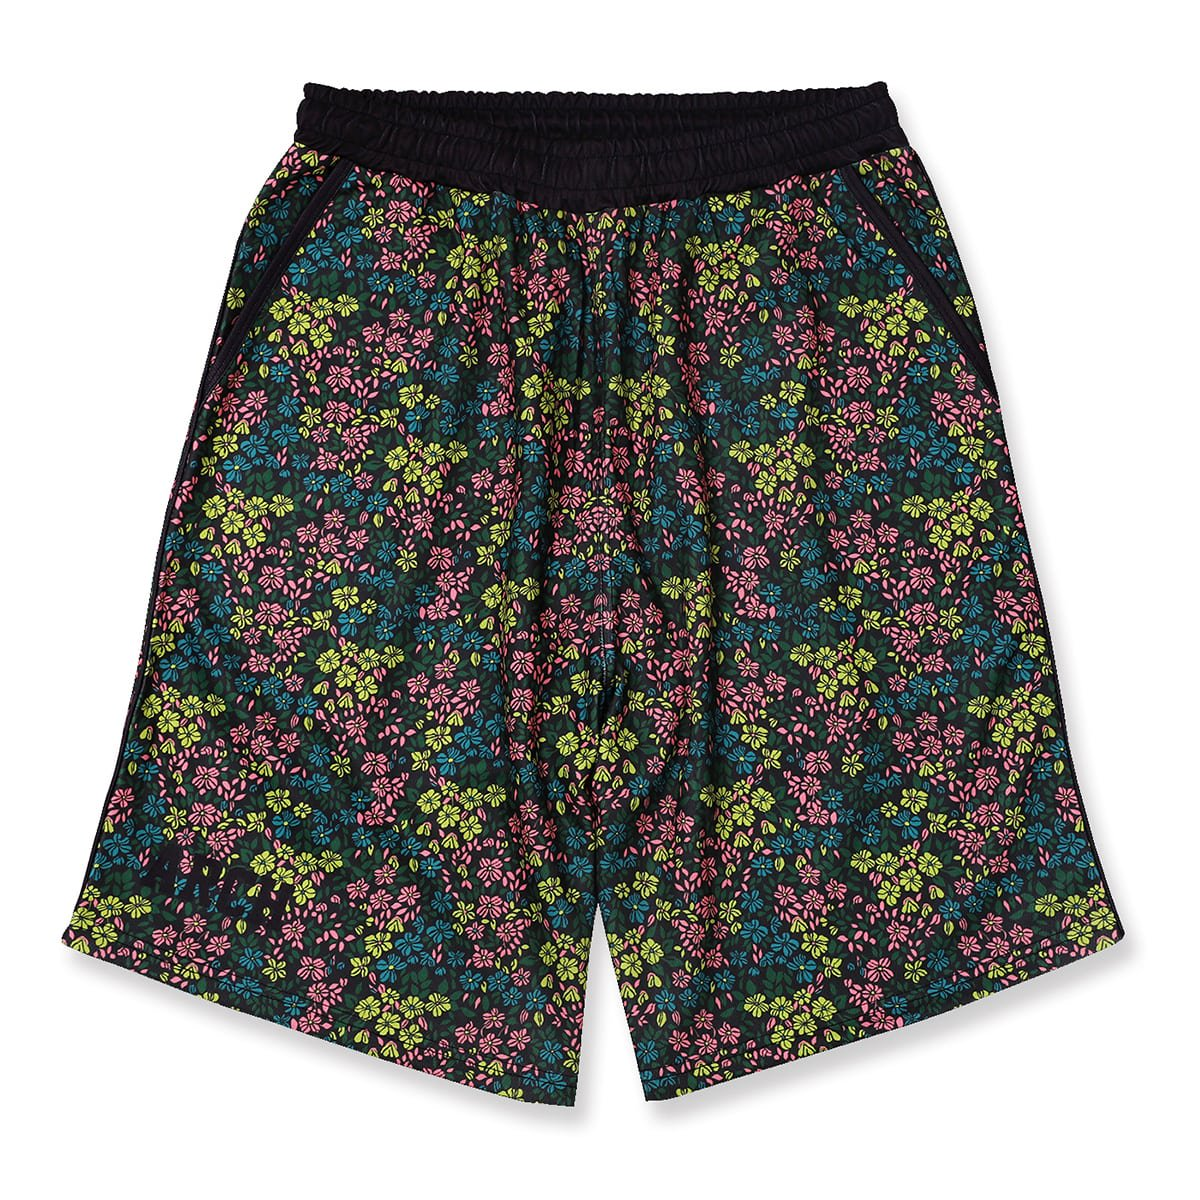 bloom shorts【multi】